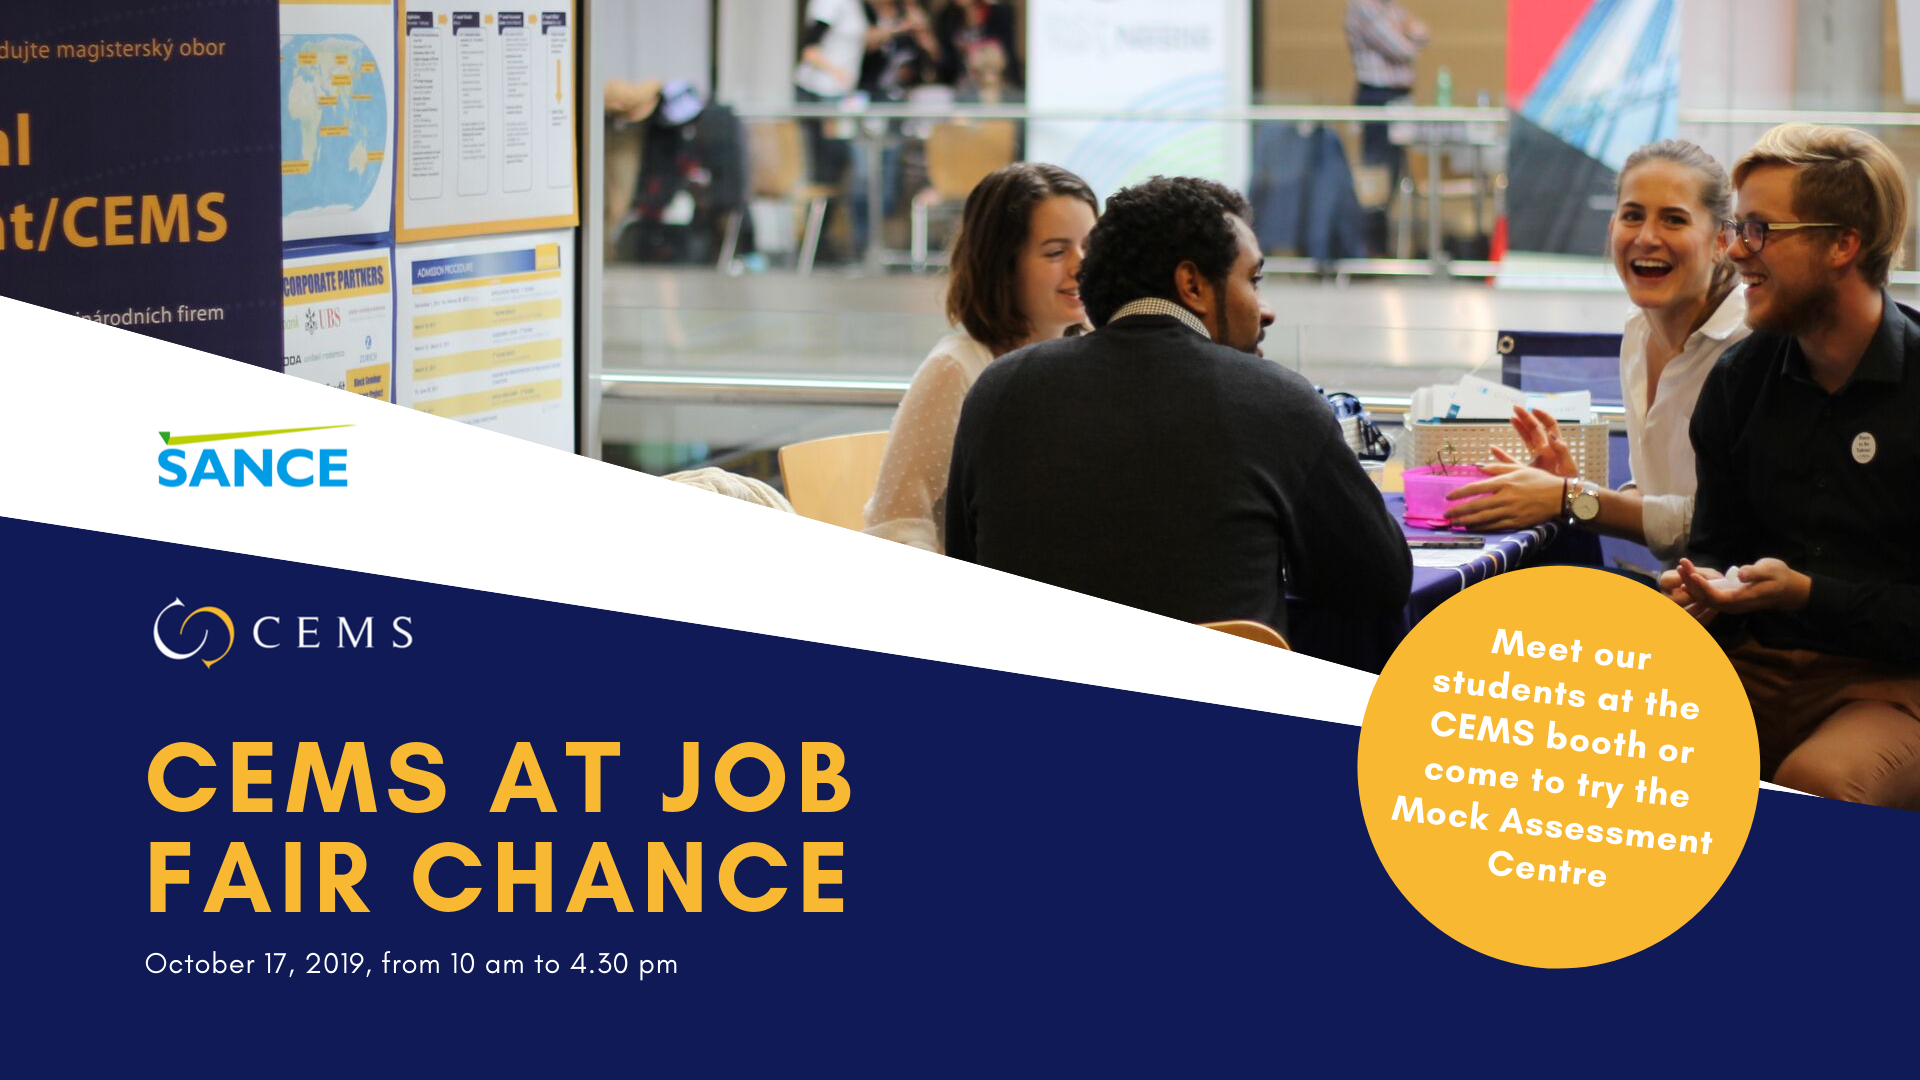 CEMS Mock Assessment Centre at Job Fair Šance – October 17, 2019